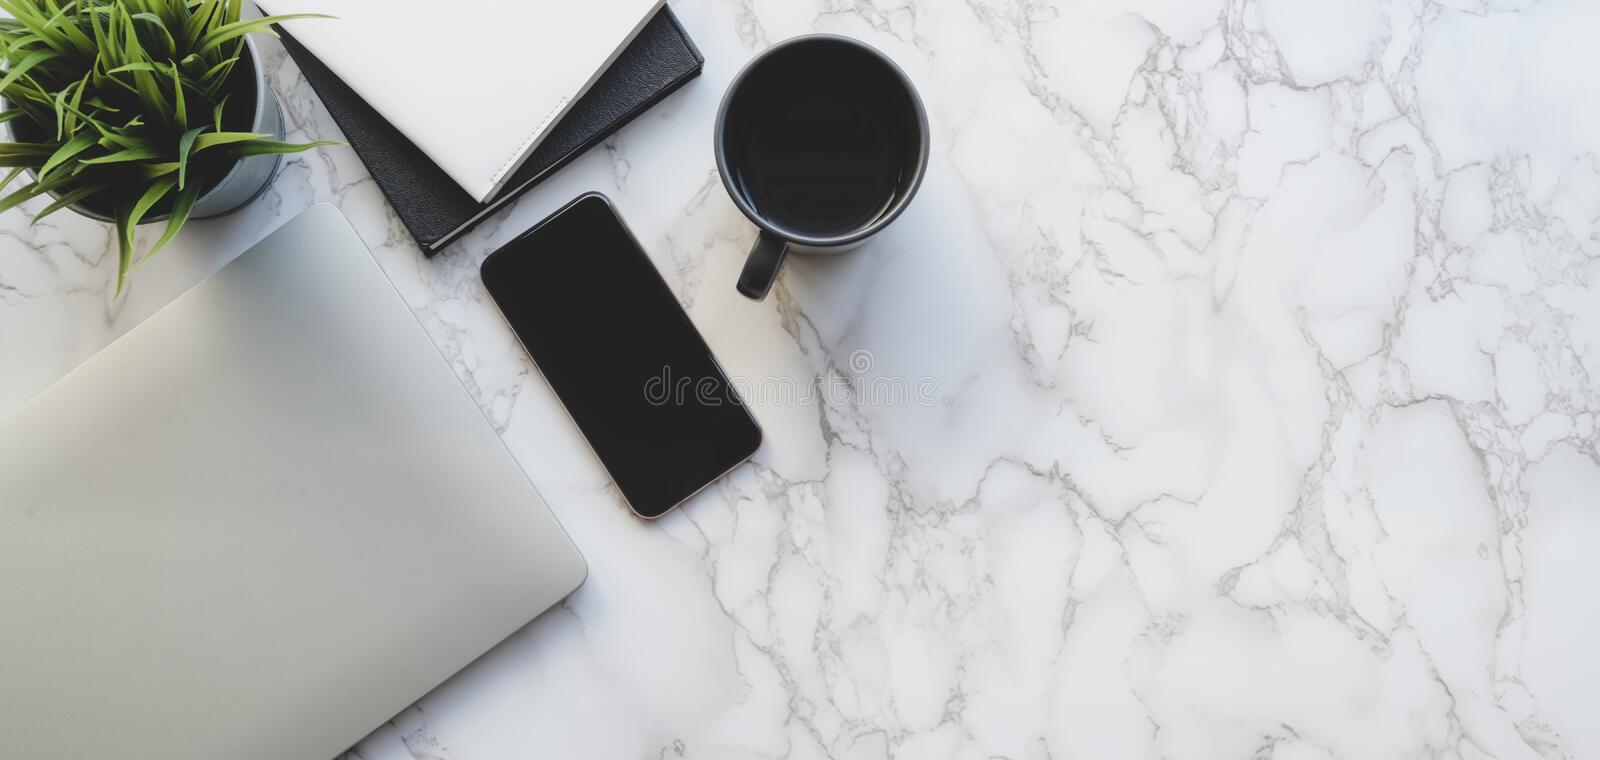 Top view of stylish workspace with laptop computer and office supplies on marble desk royalty free stock images